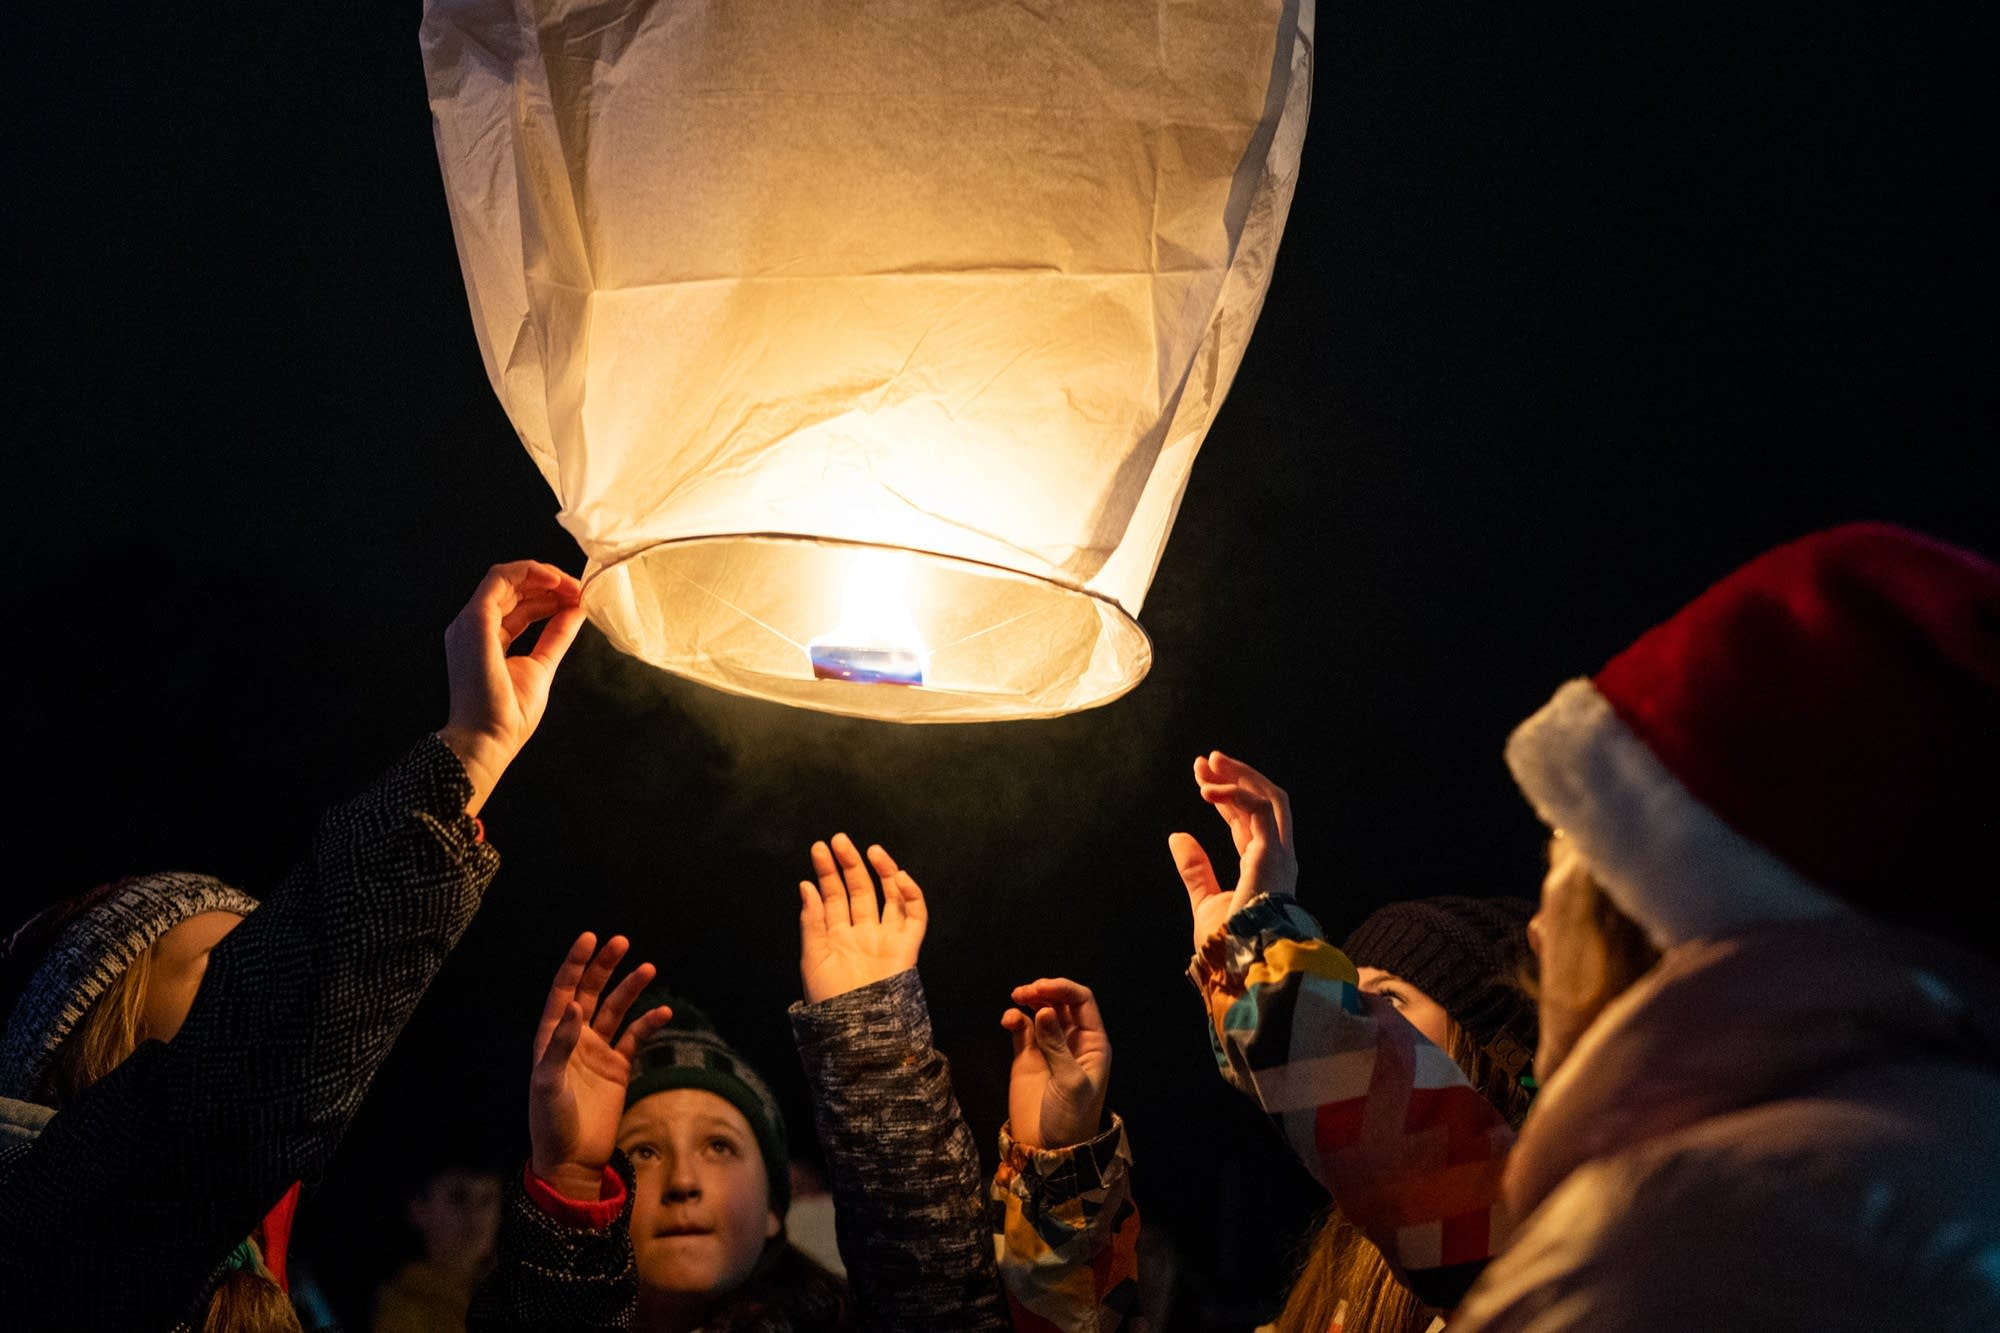 Barron middle school students release peace lanterns into the night sky.